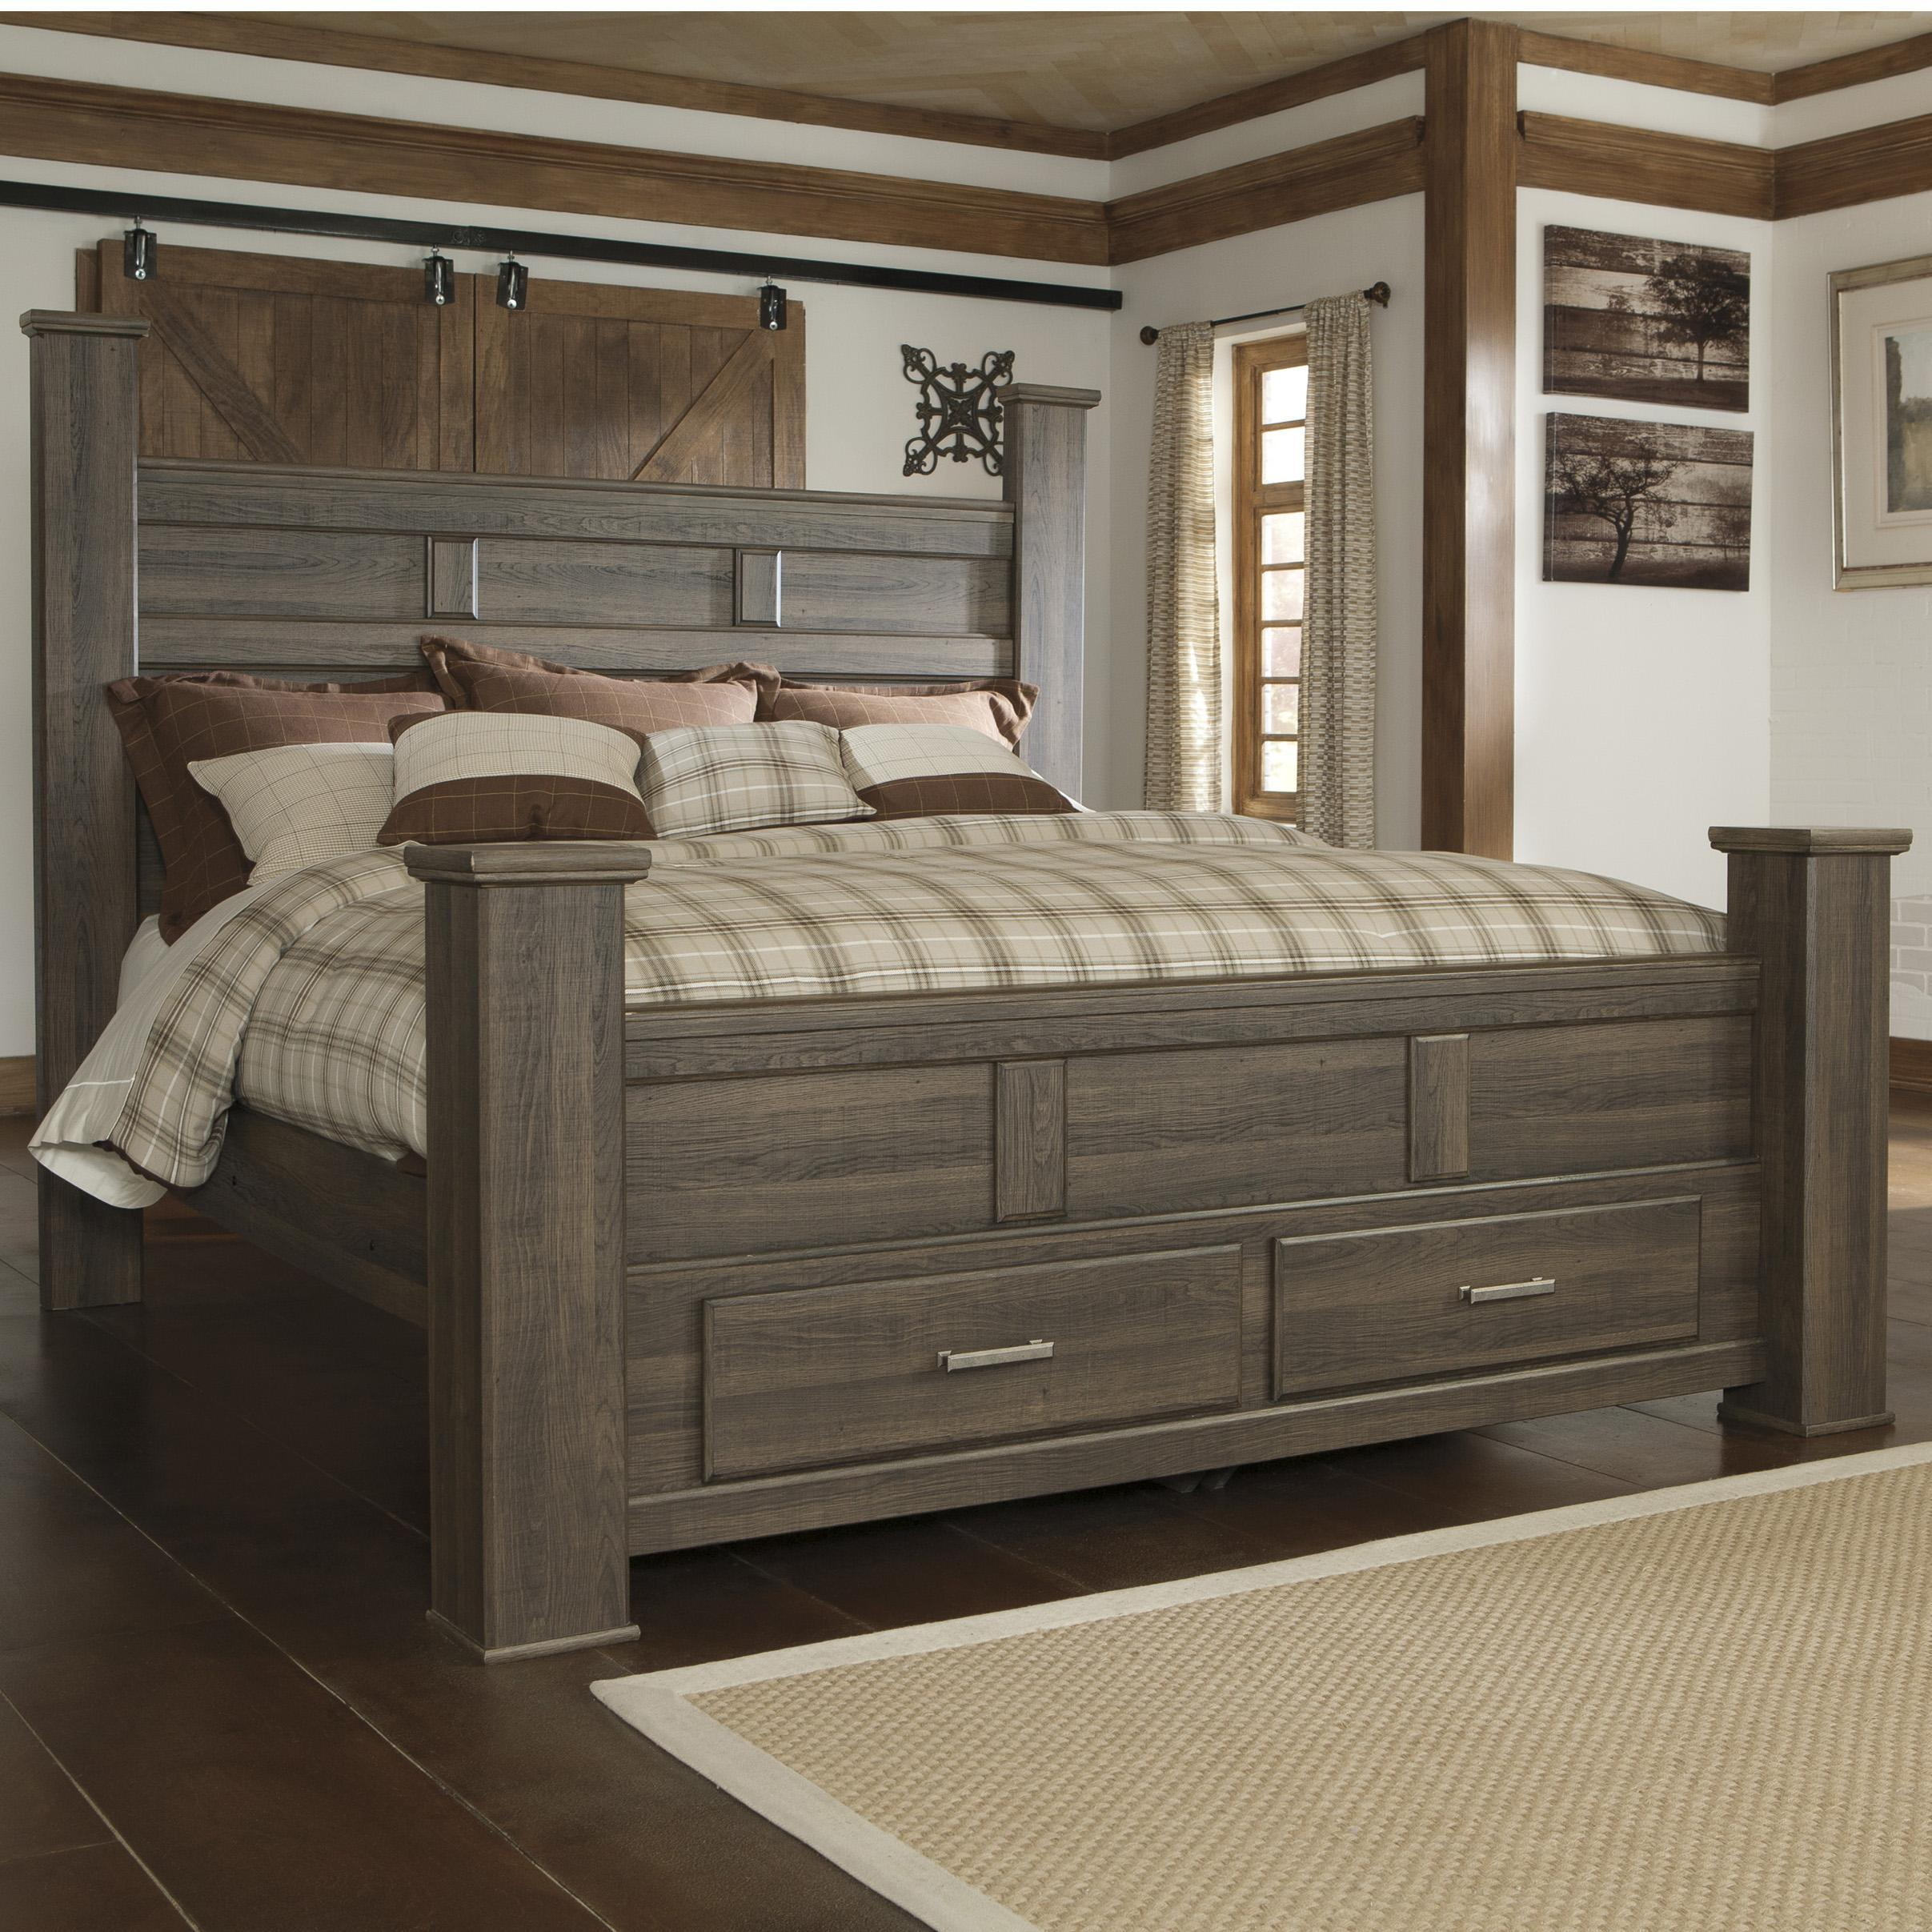 Ashley Furniture King Bed 28 Images Signature Design By Ashley Bedroom Queen King Under Bed